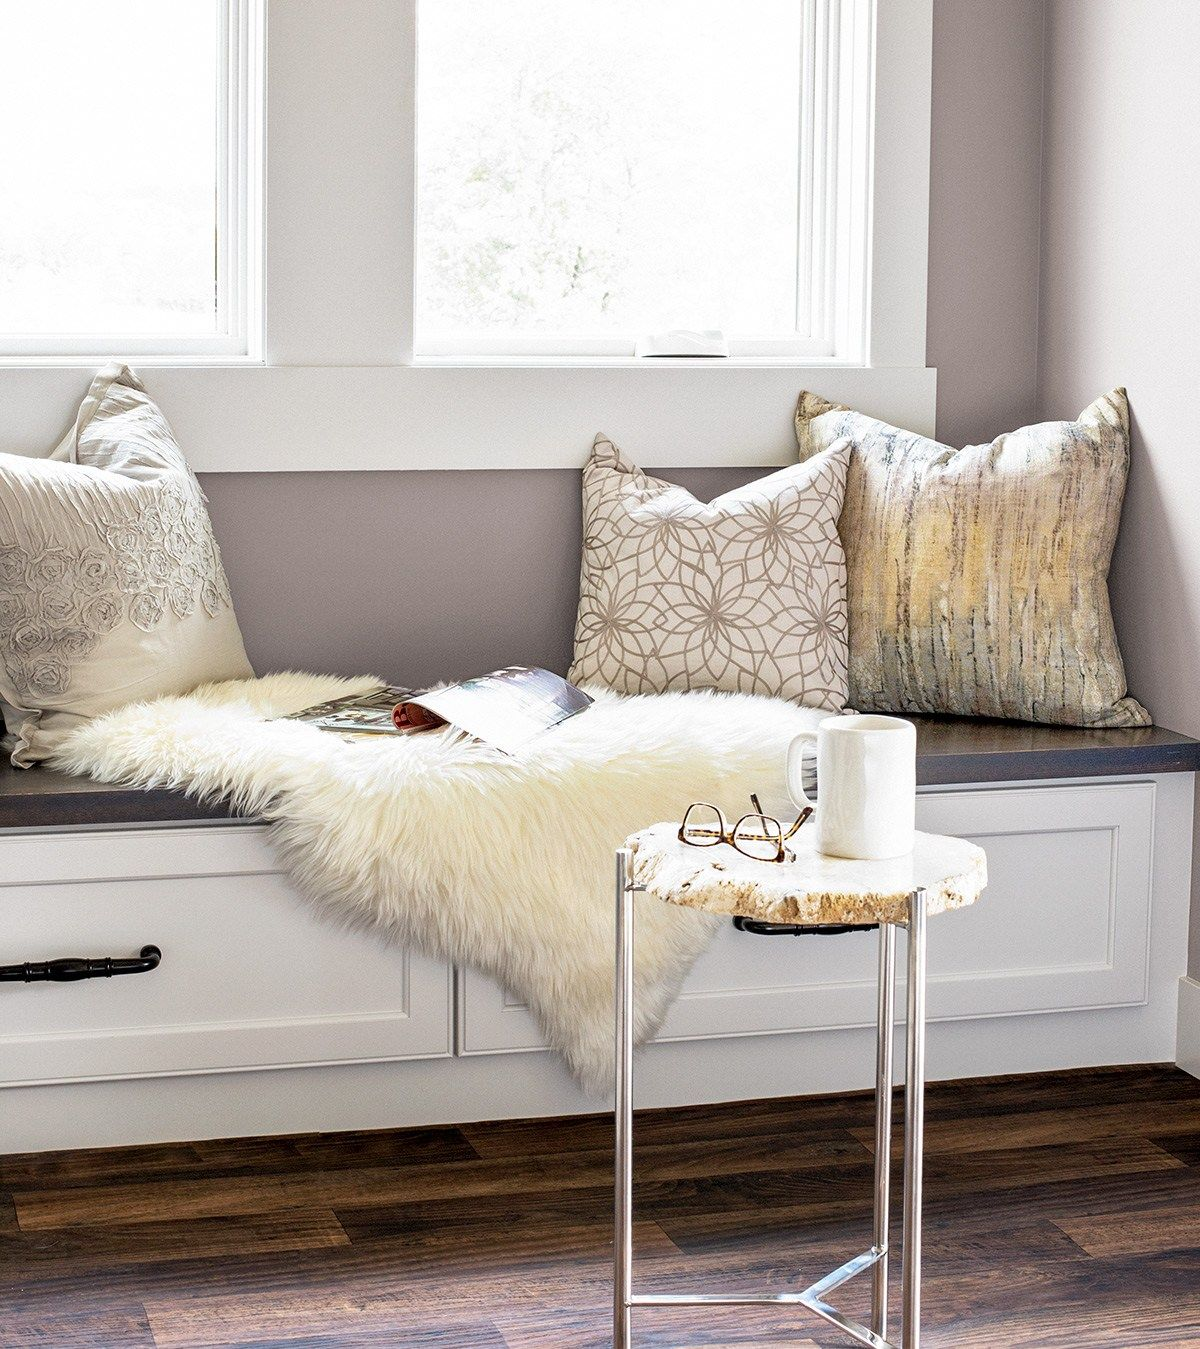 A Simple Way to Add Sparkle To Your Space | Lavender walls, Wall ...